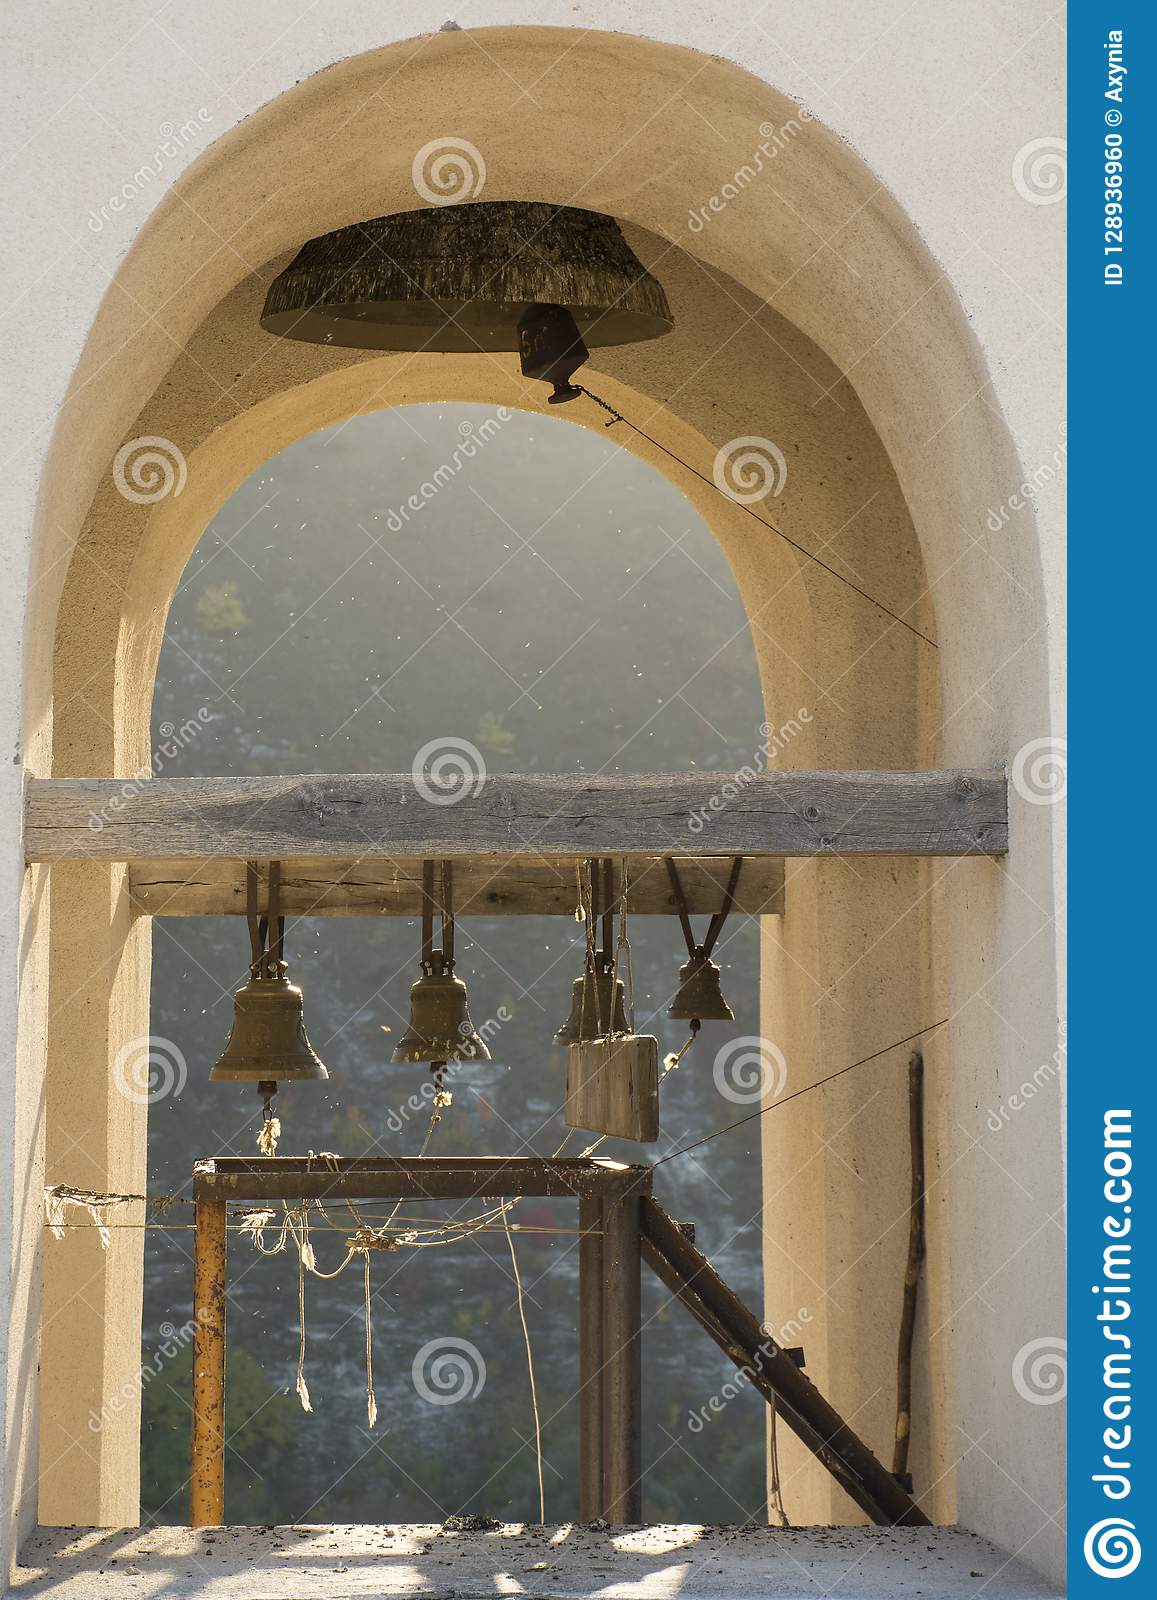 Bell tower in Old Orhei, Moldova landmark. Christian Orthodox rock monastery